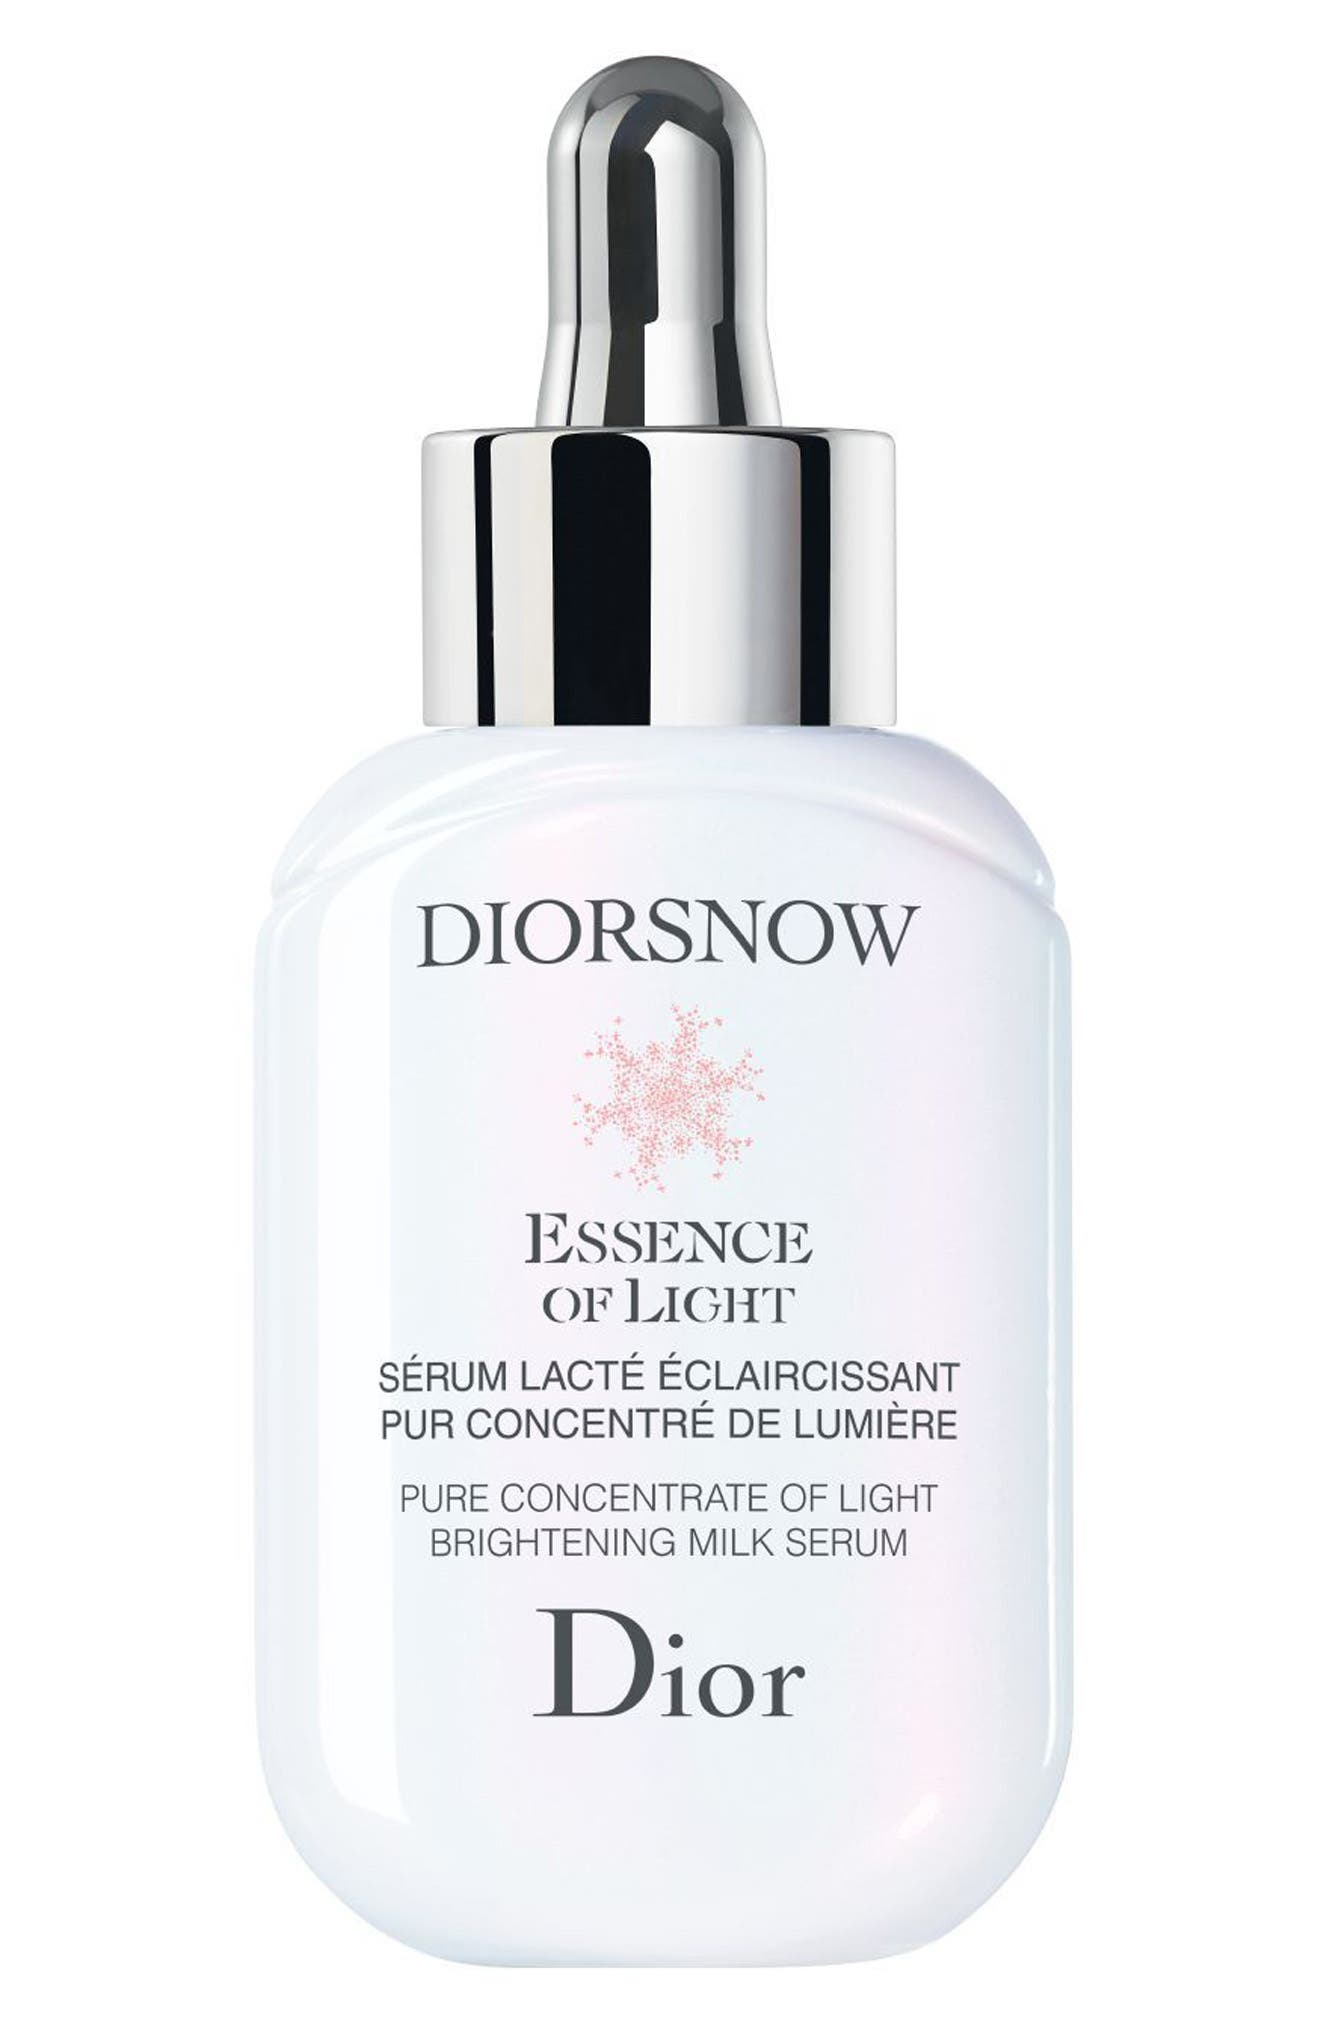 Dior Diorsnow Essence of Light Brightening Milk Serum